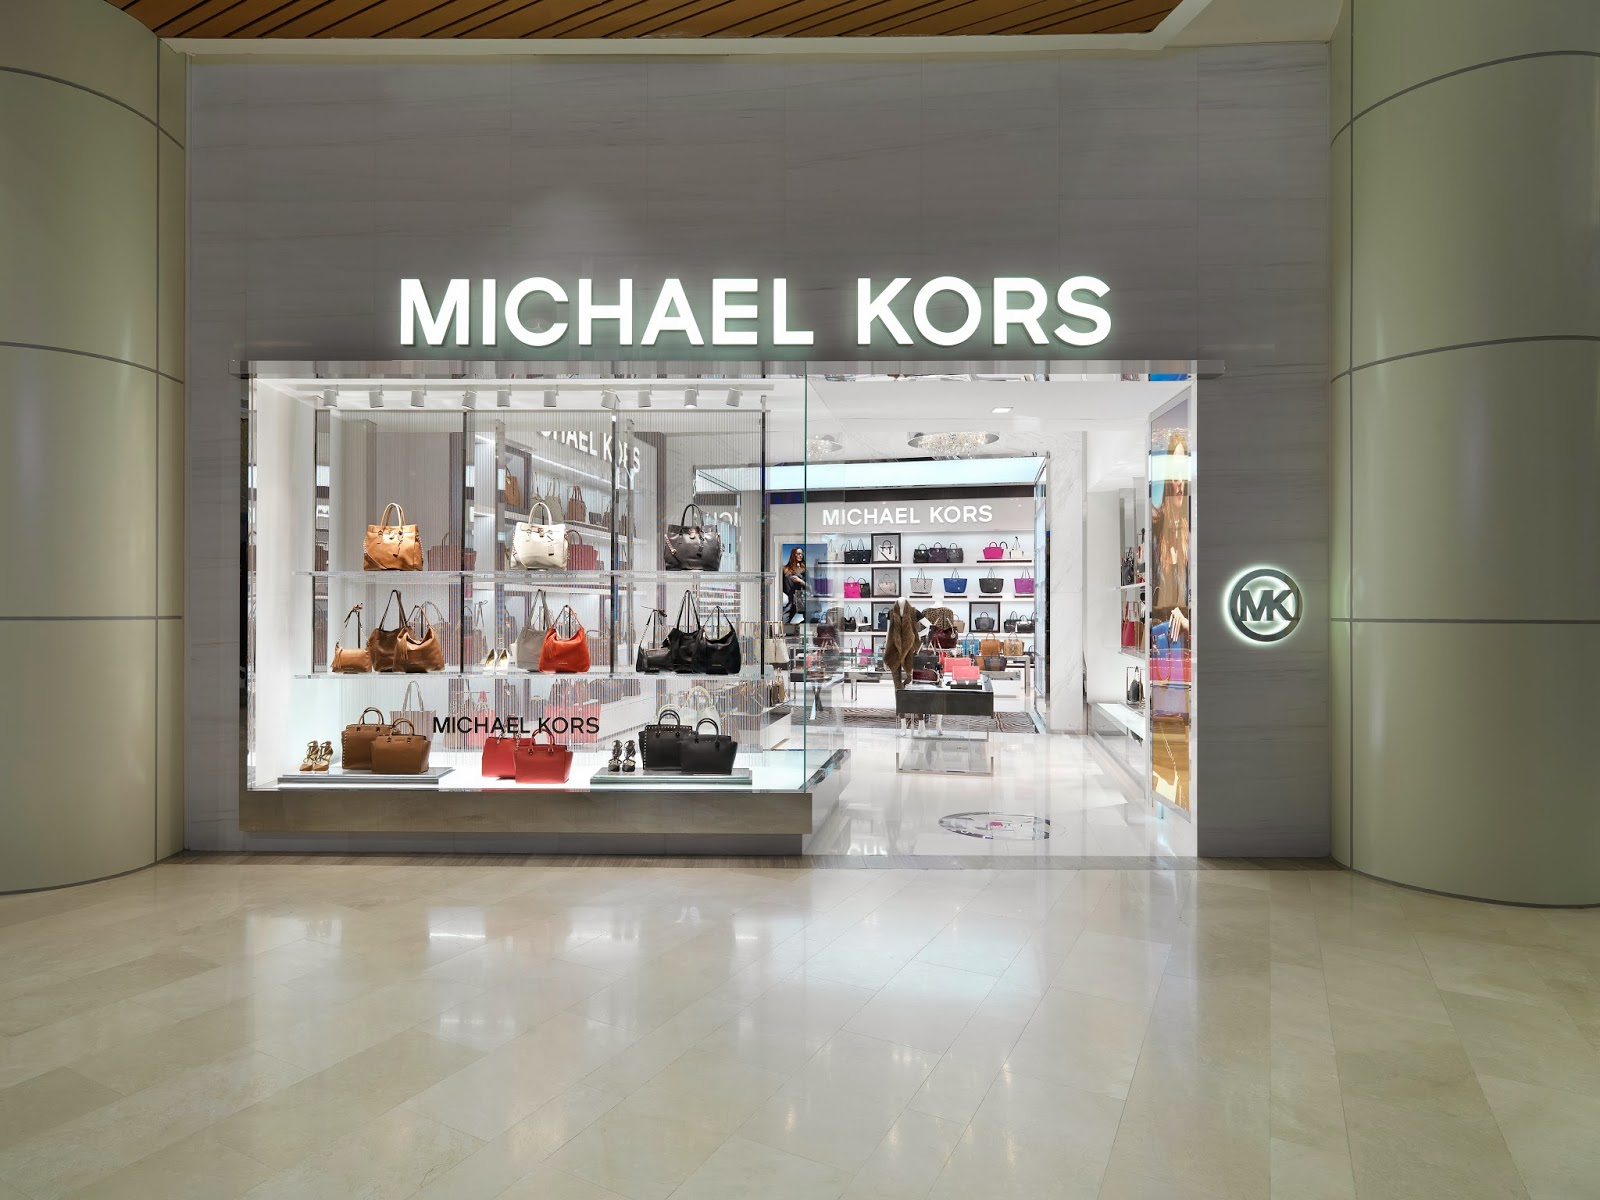 michael kors outlet store michael kors a brand popular. Black Bedroom Furniture Sets. Home Design Ideas